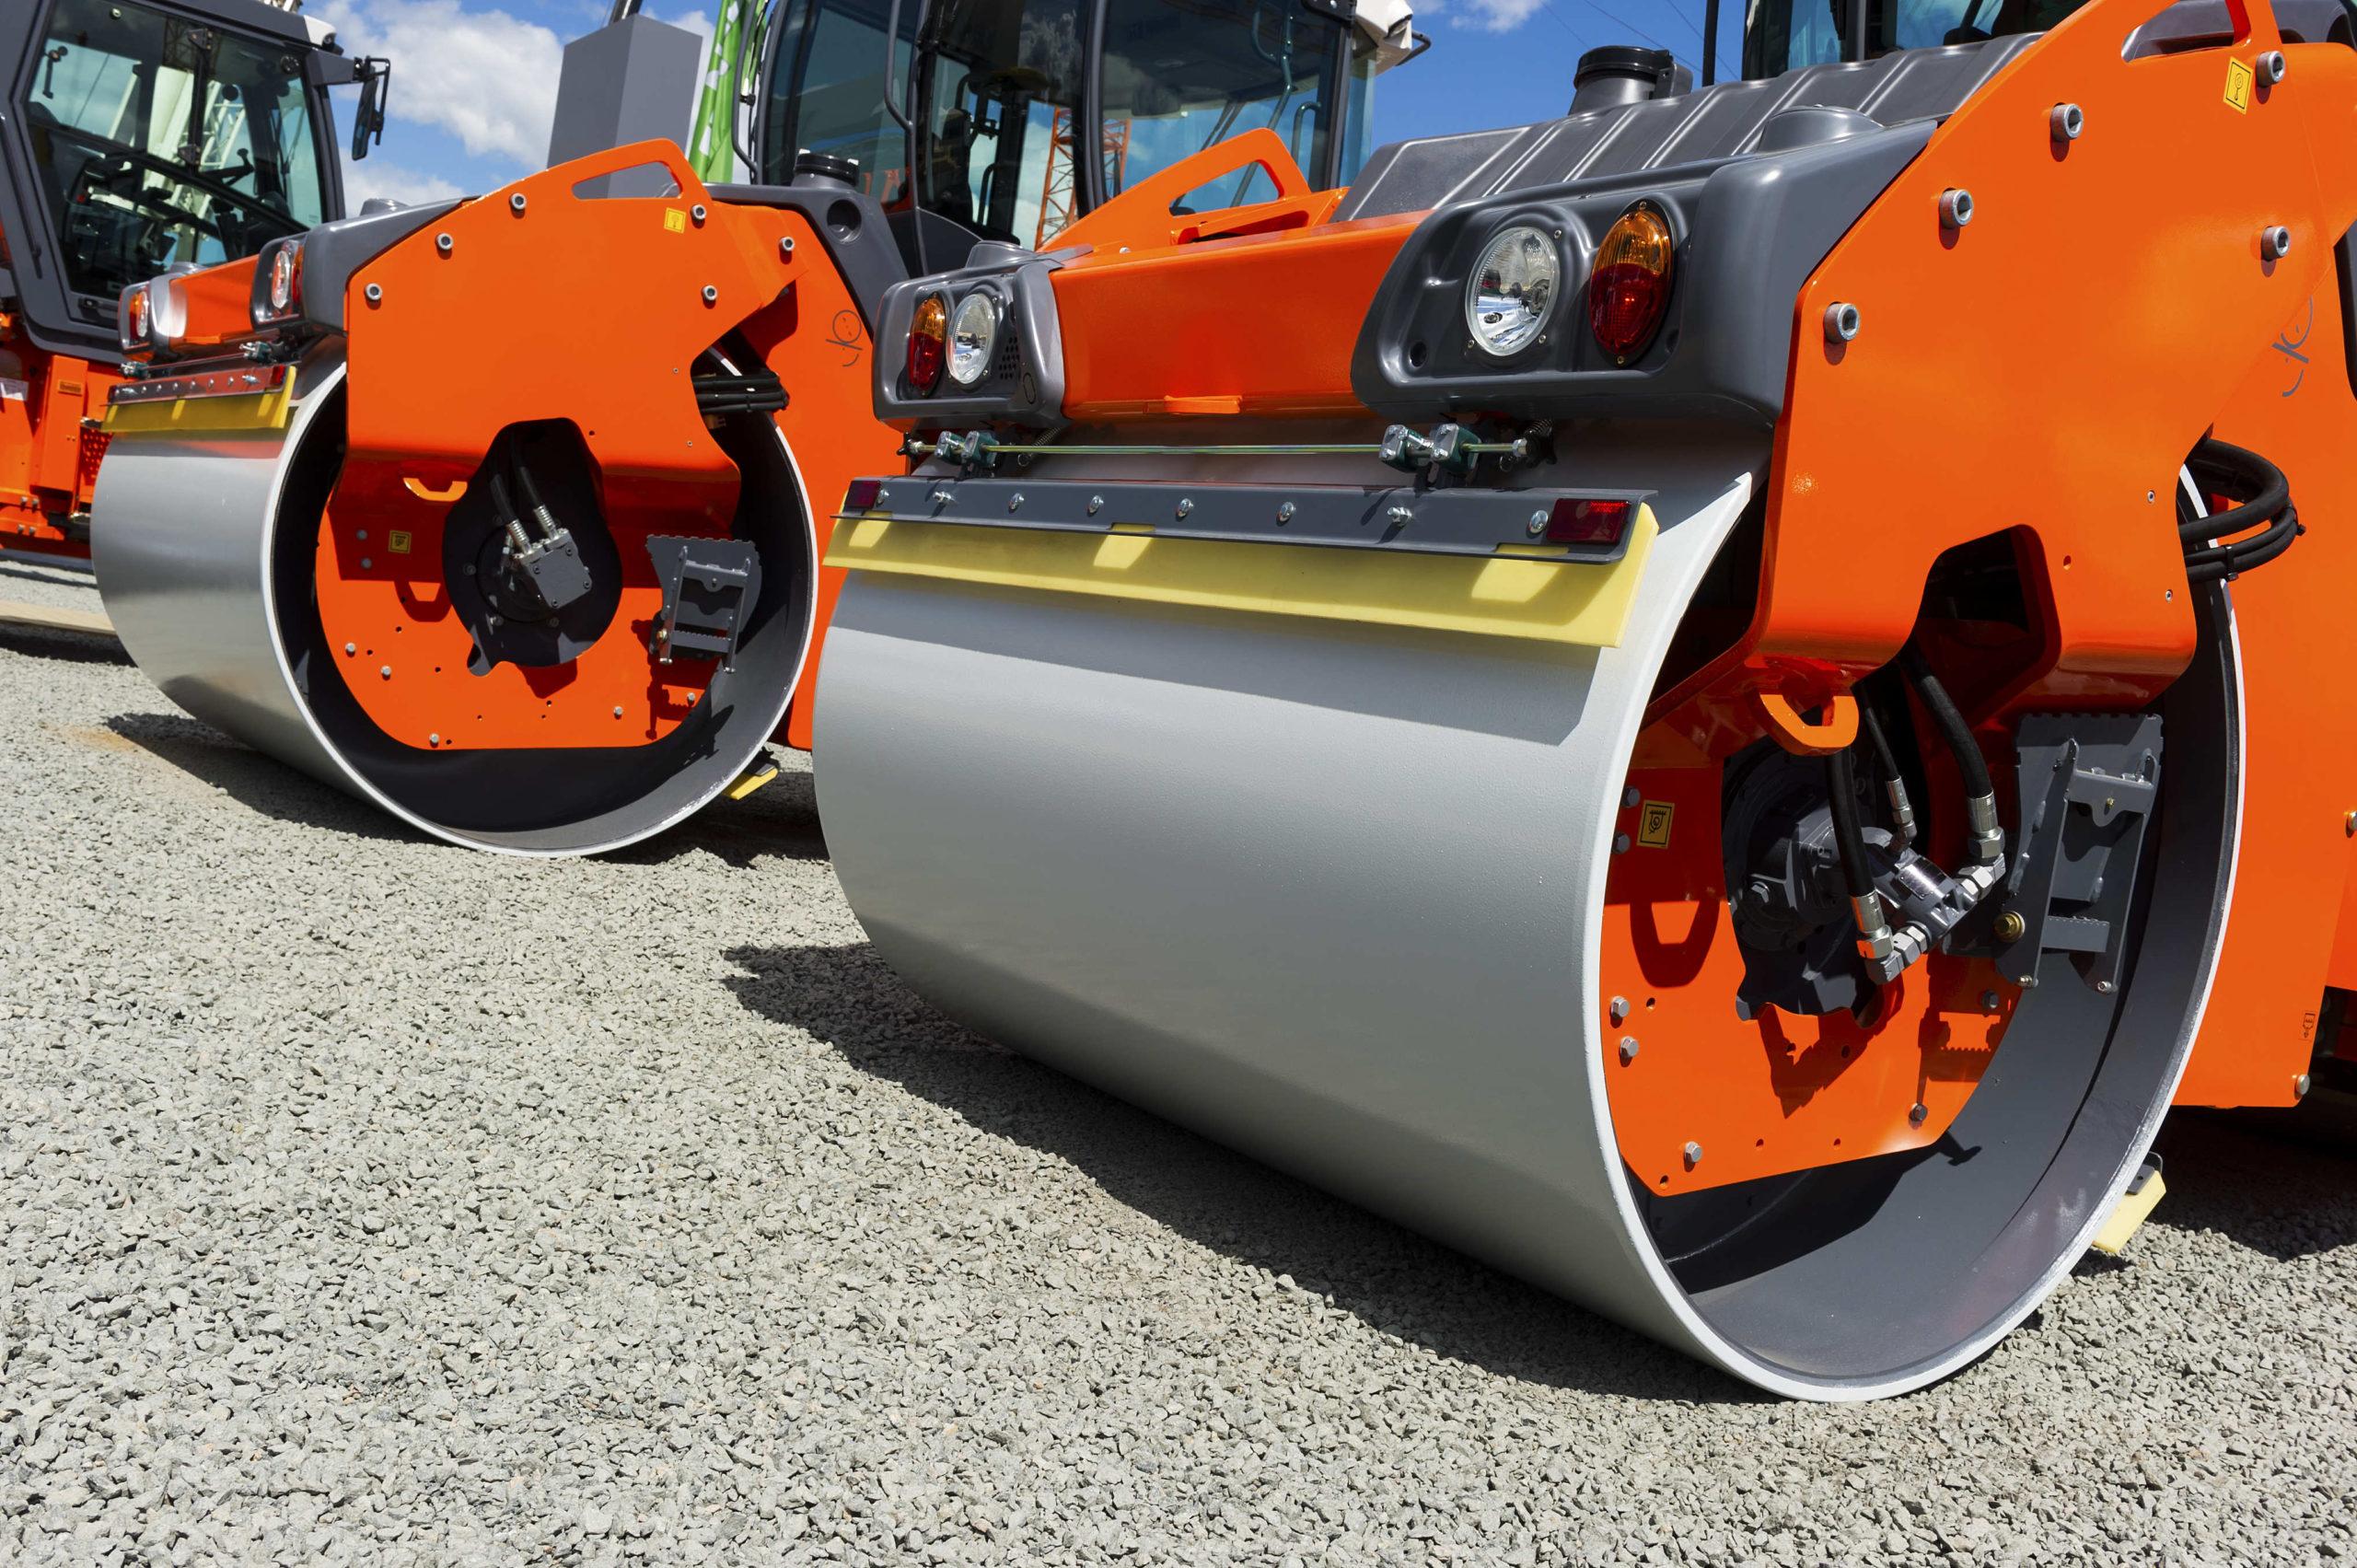 Steamroller, heavy road roller and vibration roller compactor in row on grey gravel, construction industry, blue sky and white clouds on background